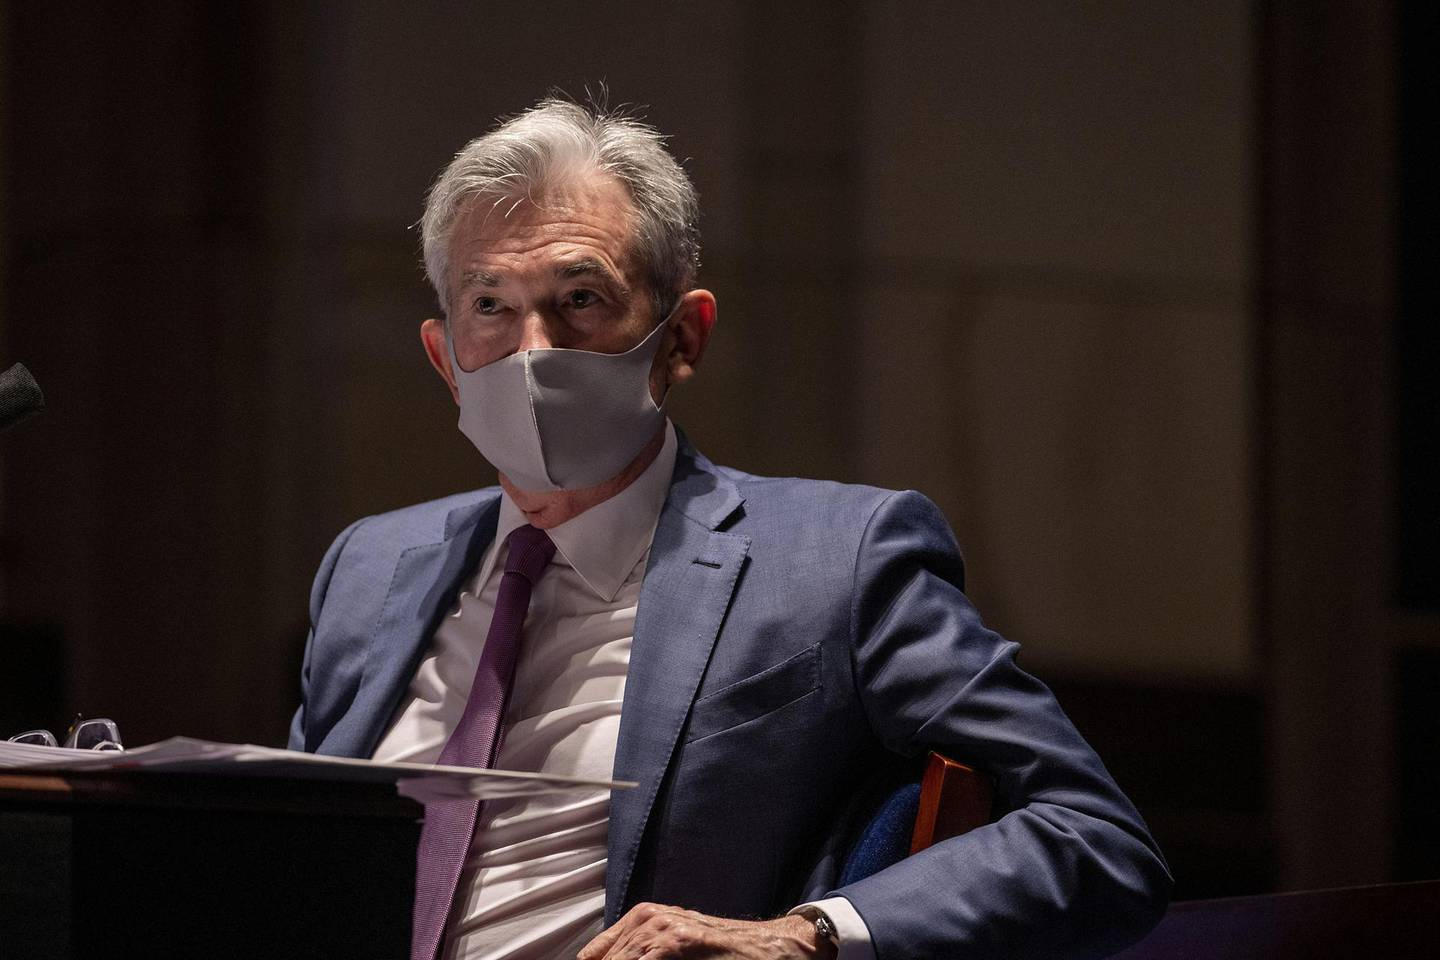 FILE PHOTO: Federal Reserve Chairman Jerome Powell, wearing a face mask, testifies before the House of Representatives Financial Services Committee during a hearing on oversight of the Treasury Department and Federal Reserve response to the outbreak of the coronavirus disease (COVID-19), on Capitol Hill in Washington, U.S., June 30, 2020. Tasos Katopodis/Pool via REUTERS/File Photo